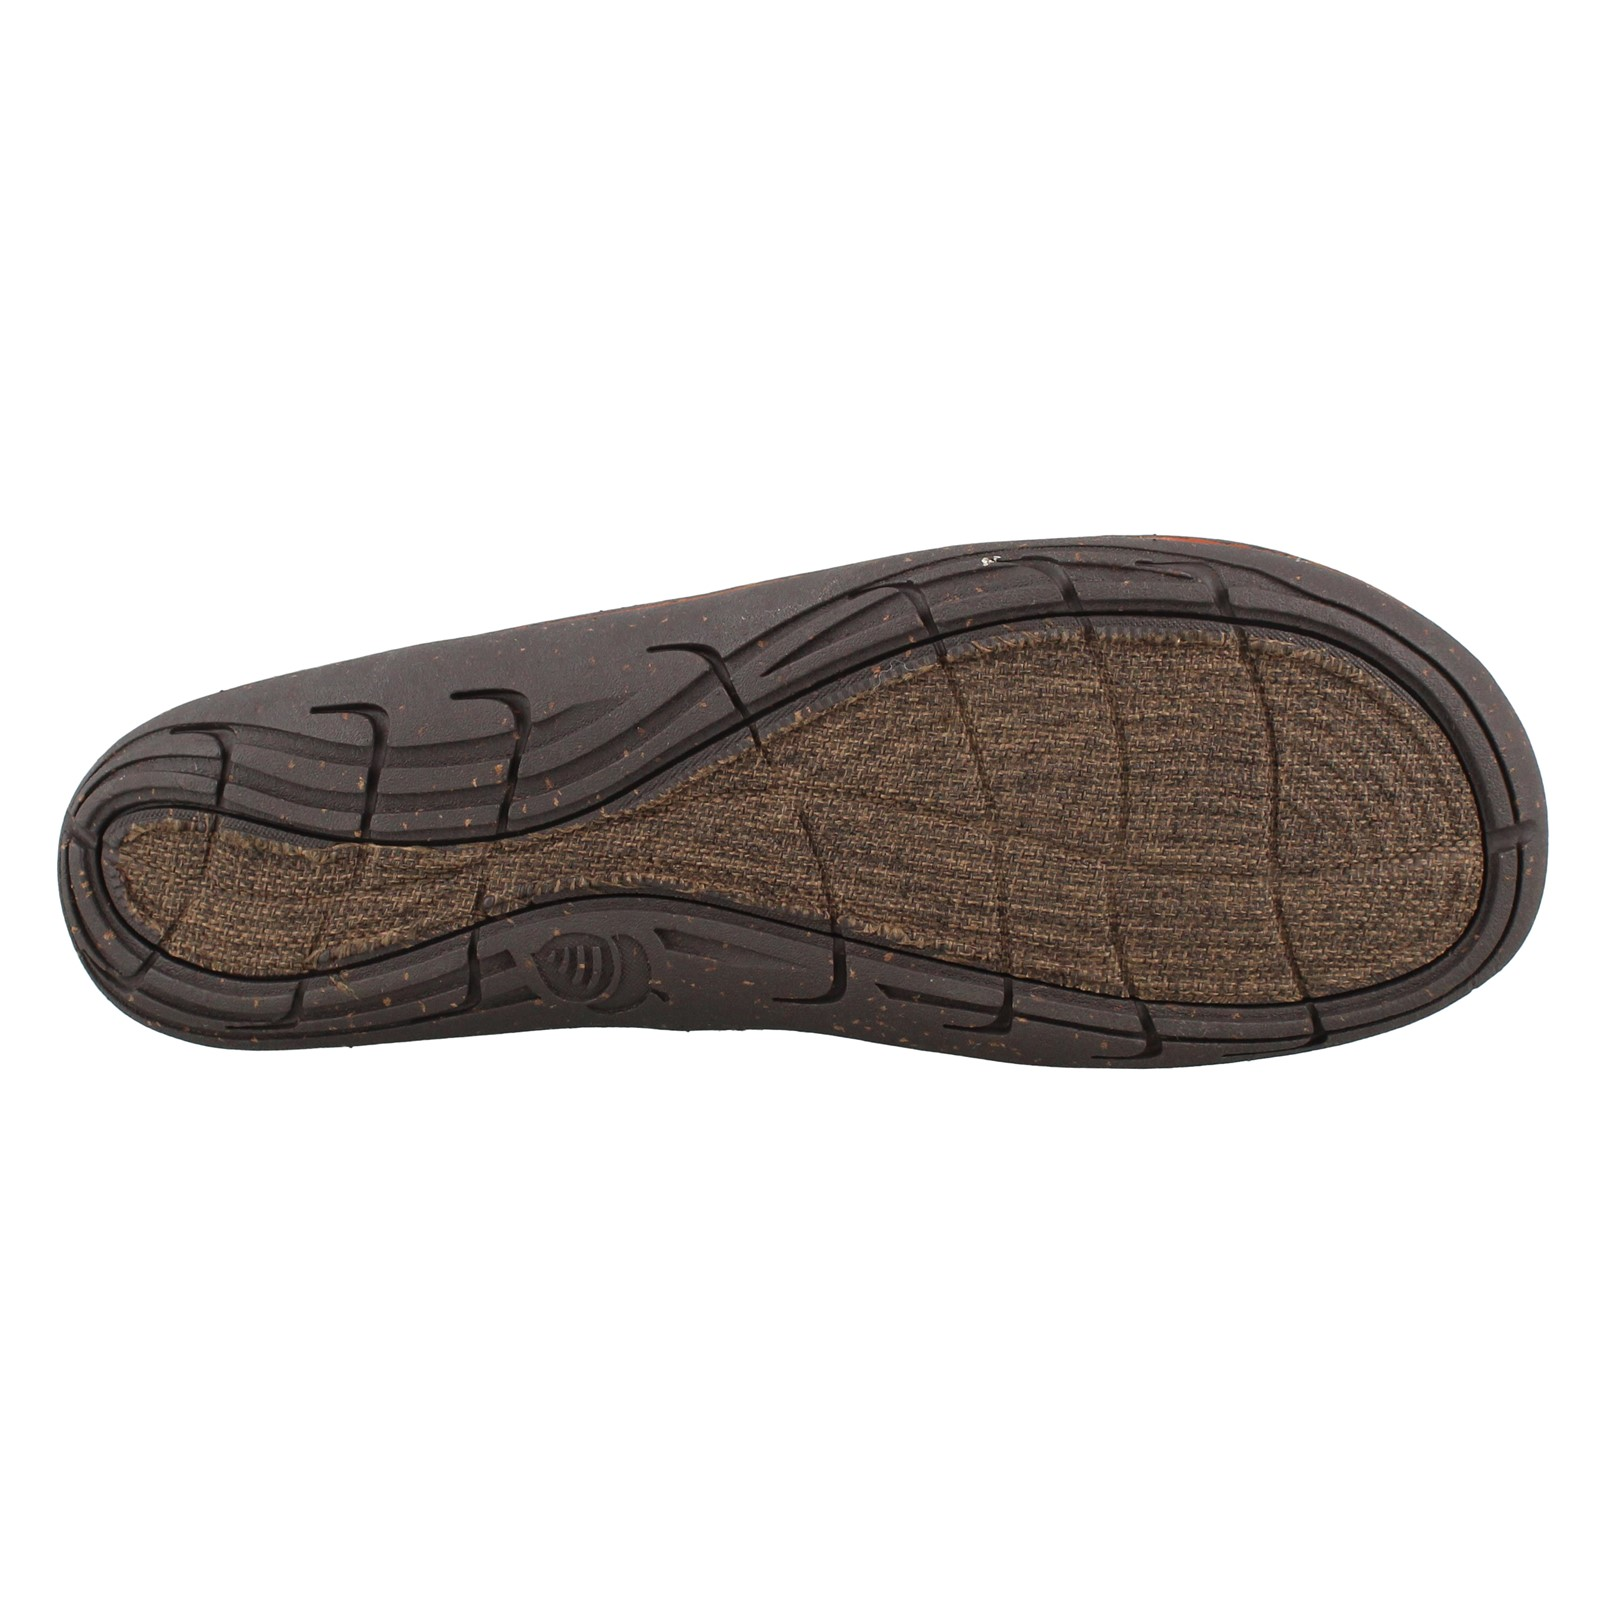 96560655a4e Home; Men's Acorn, Ellsworth Slipper. Previous. default view · 1 · 2 · 3